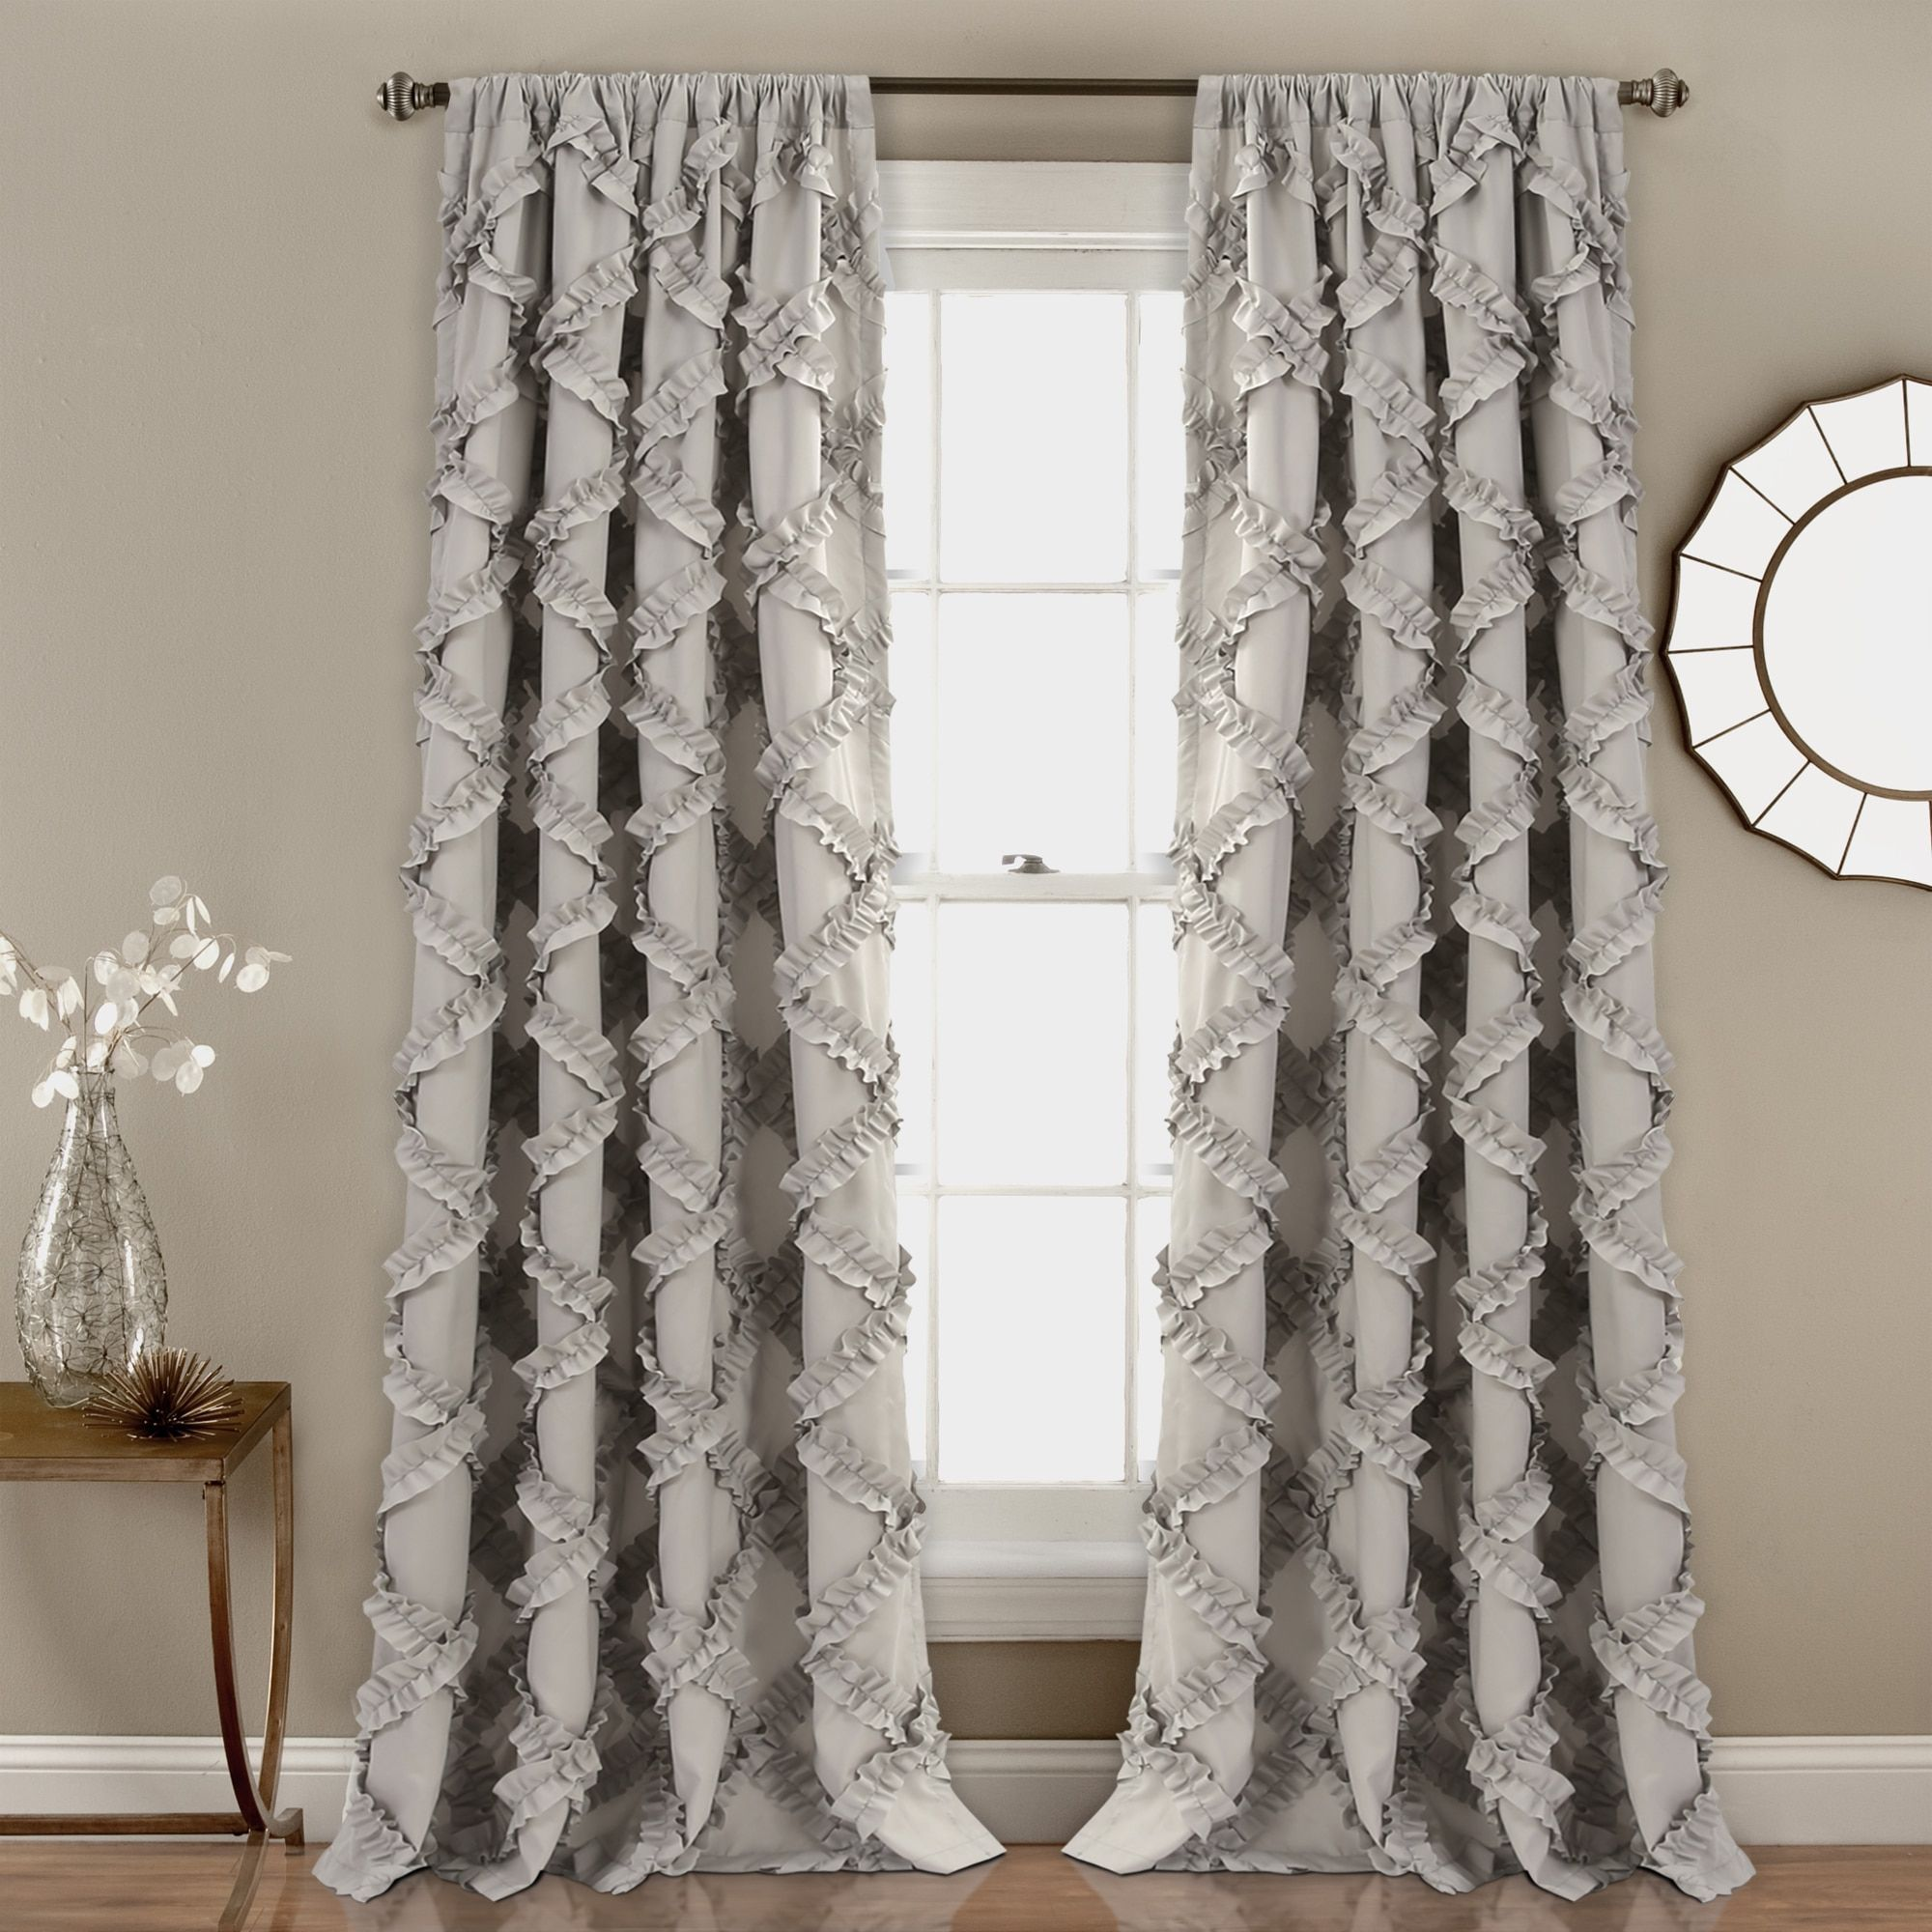 draw glass rod full drapes barn panels together curtains tie techniques draping buy ceiling well concept for sliding curtain drapery form pictures barns brown traverse size rods pottery also unforgettable as of silk doors with modern plus diy vintage tape and top or dress